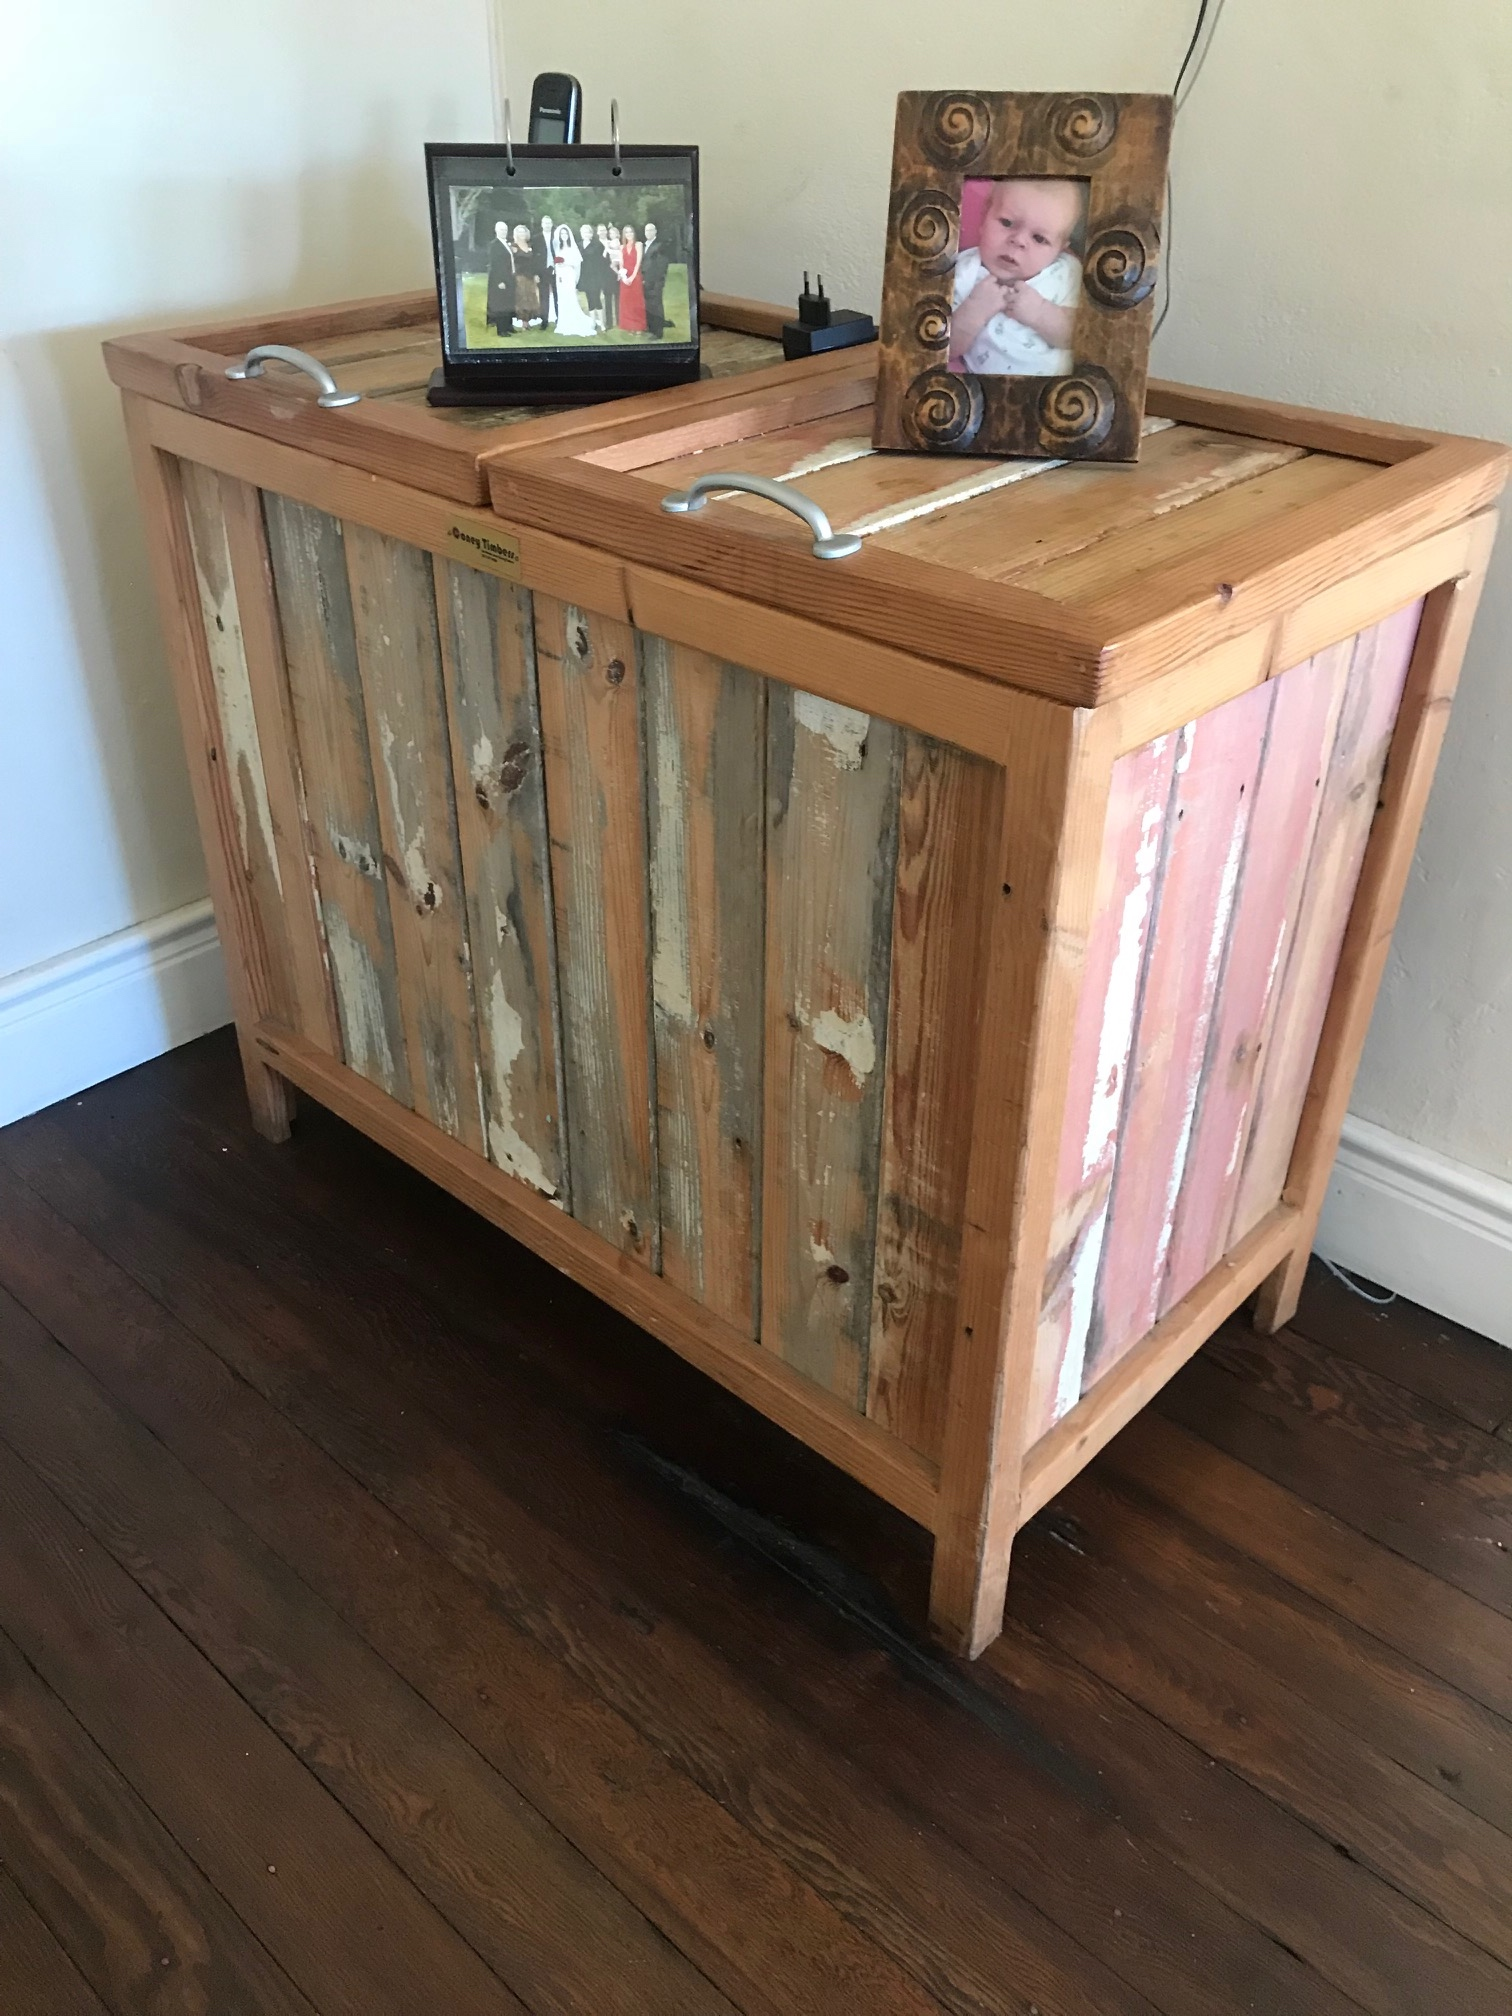 Rustic laundry basket